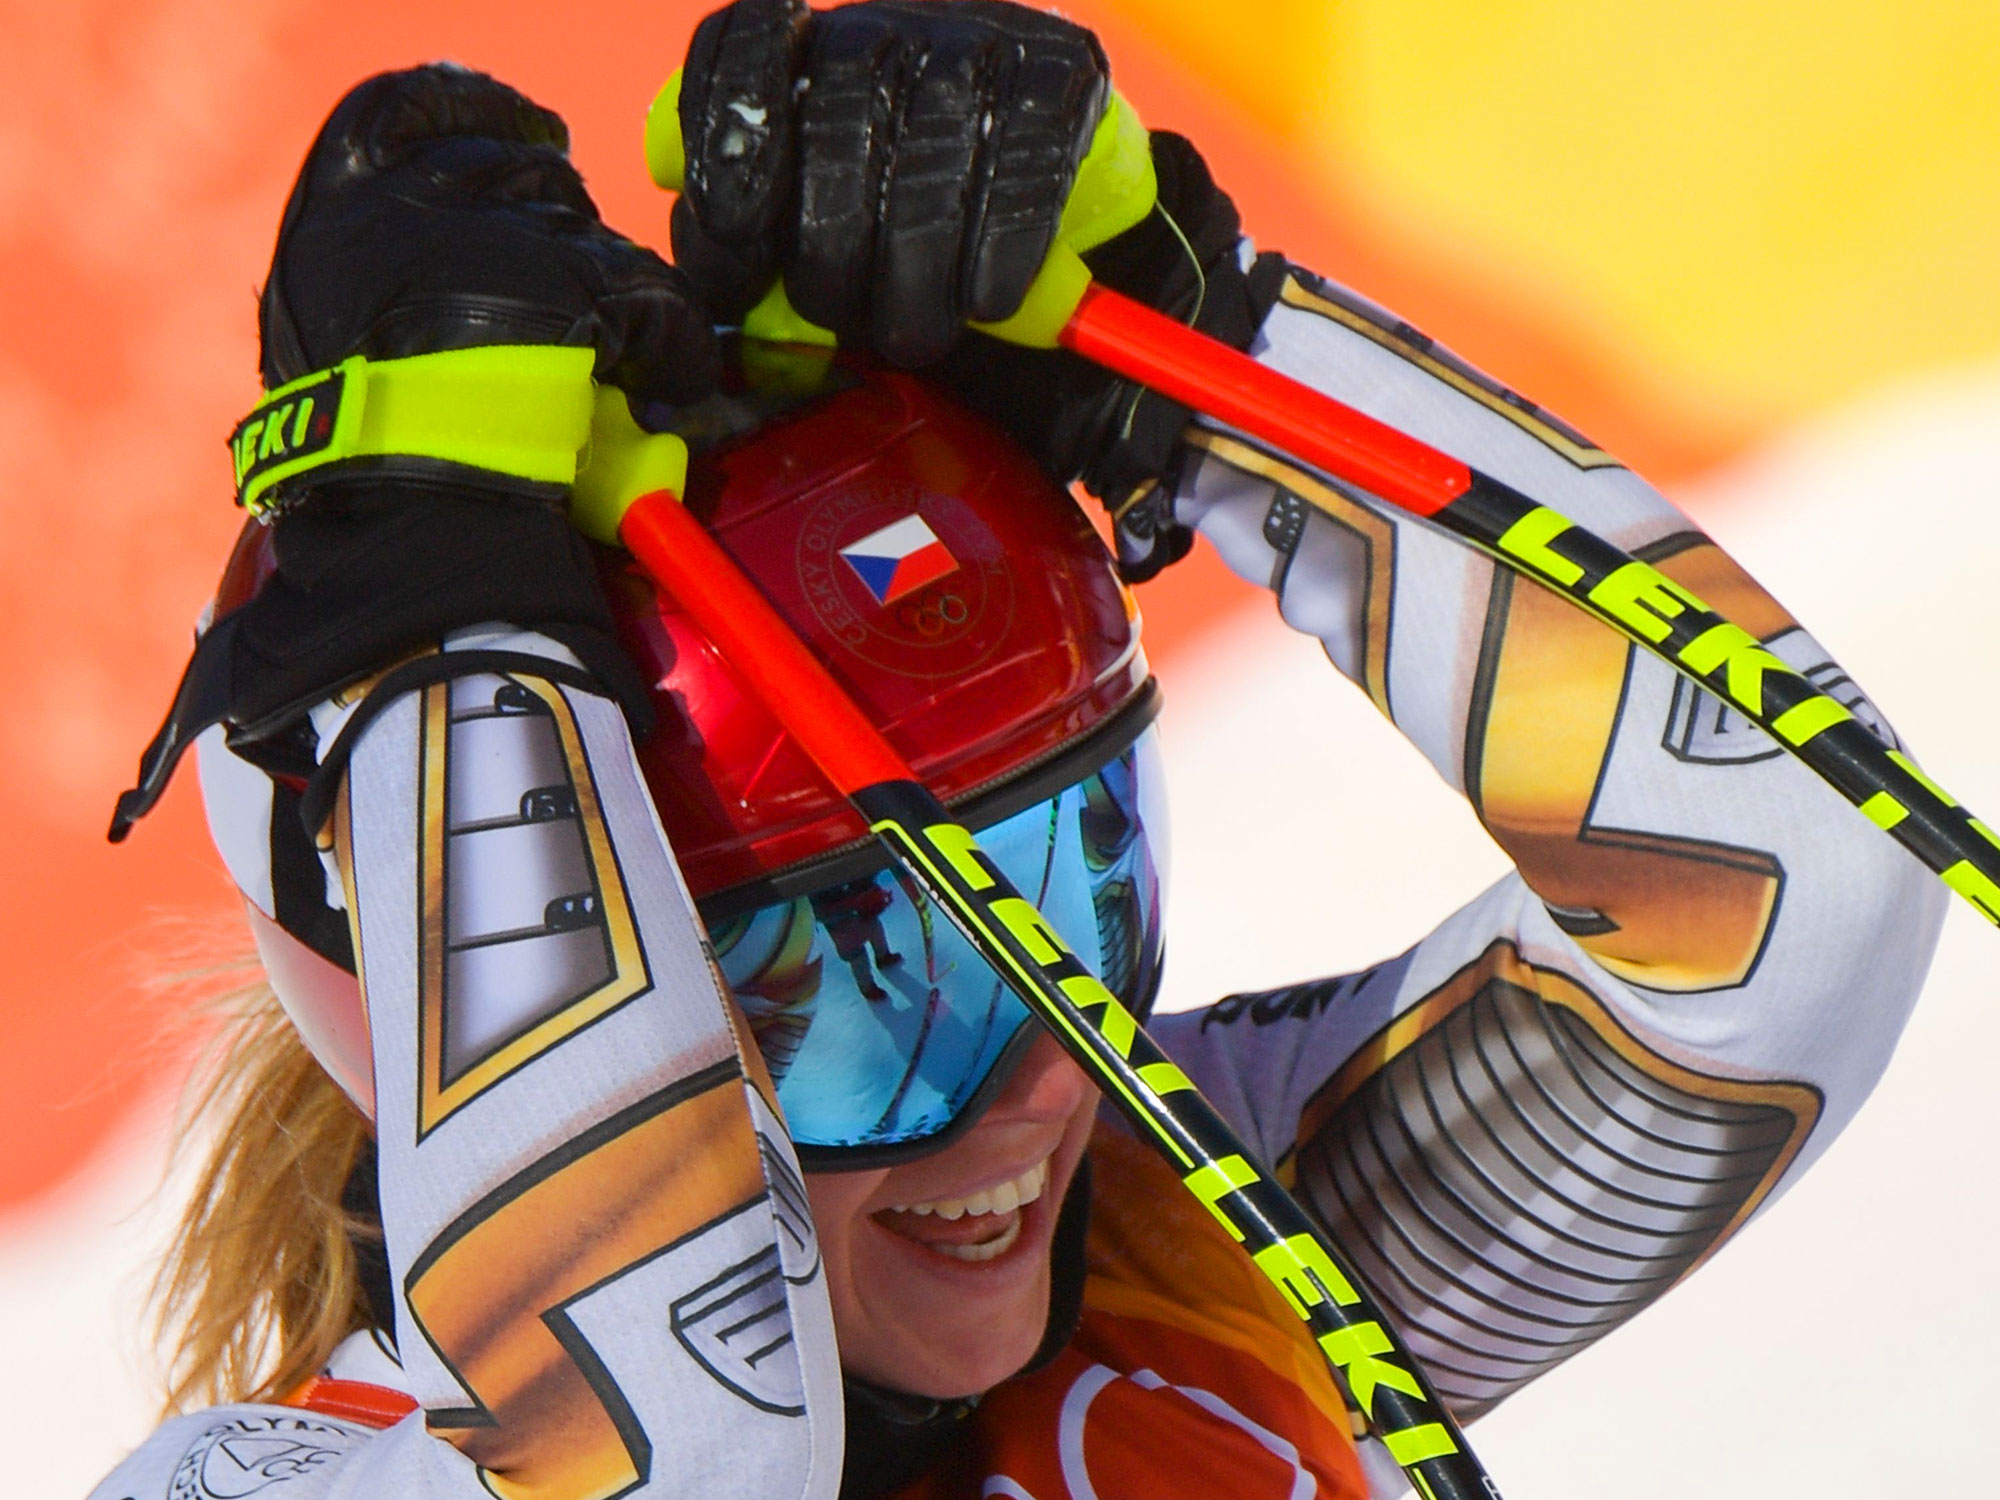 Esther Ledecka upsets in alpine skiing